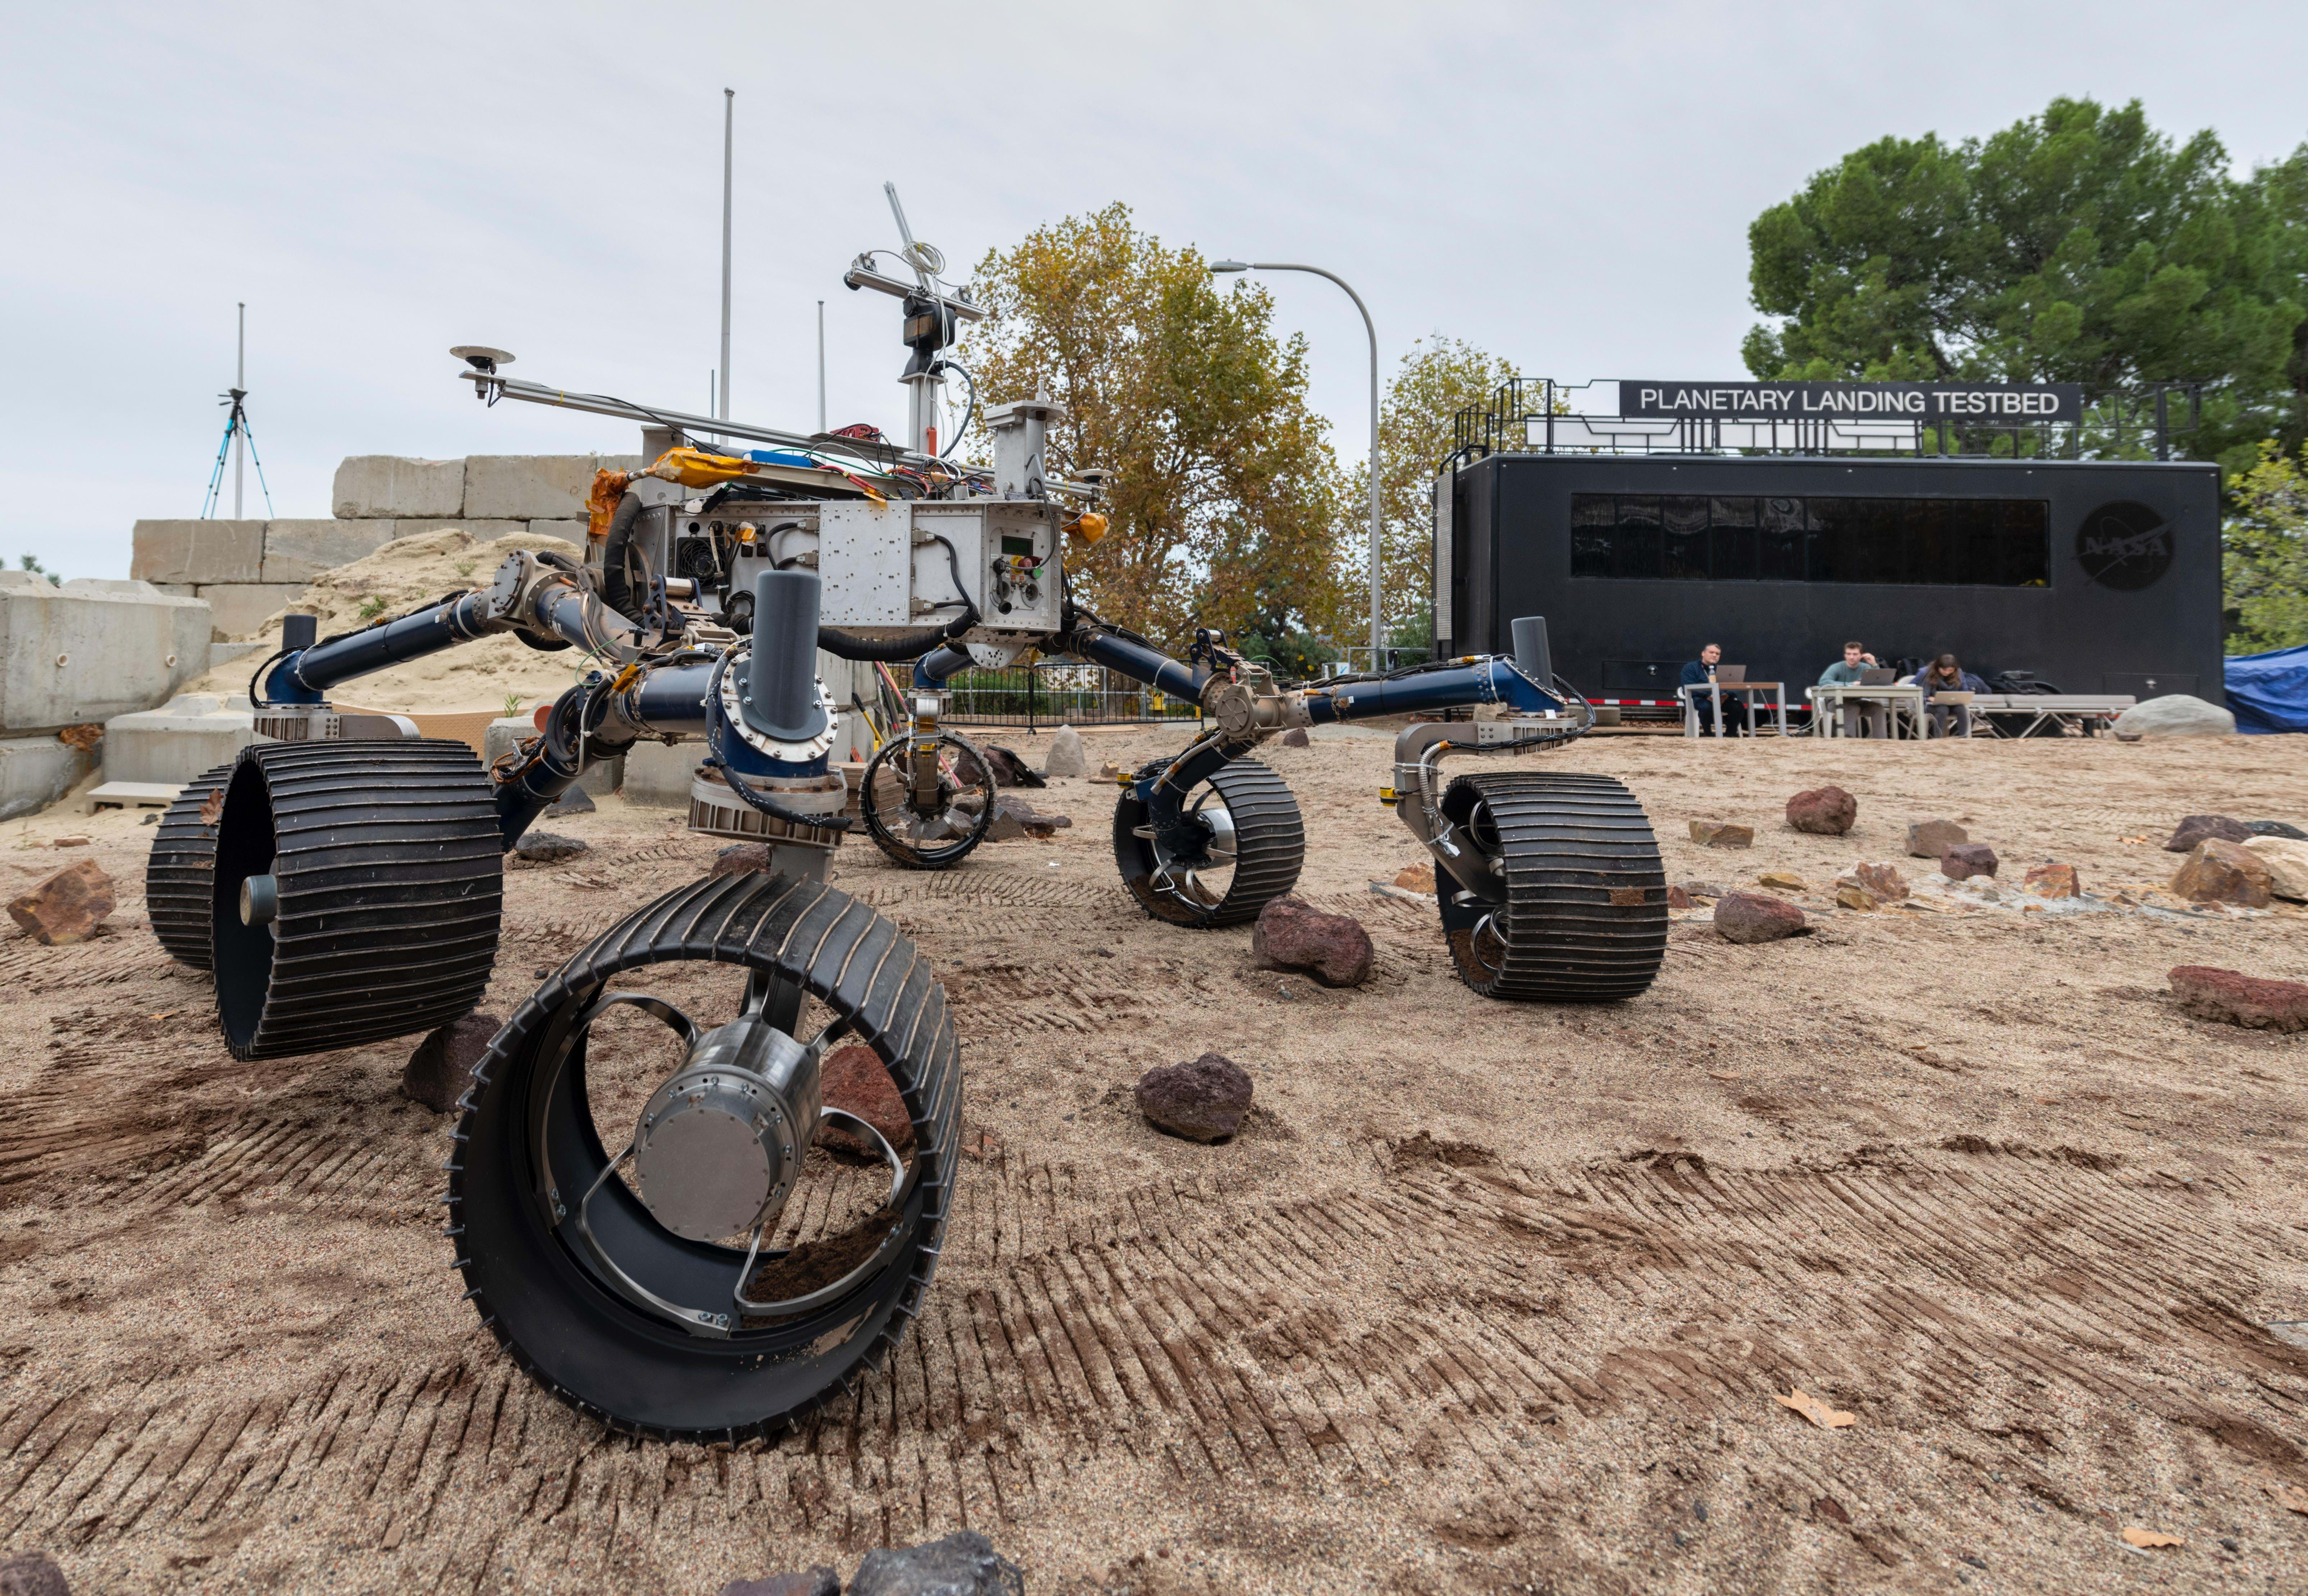 NASA's Mars 2020 rover on the Mars Yard at NASA's Jet Propulsion Laboratory